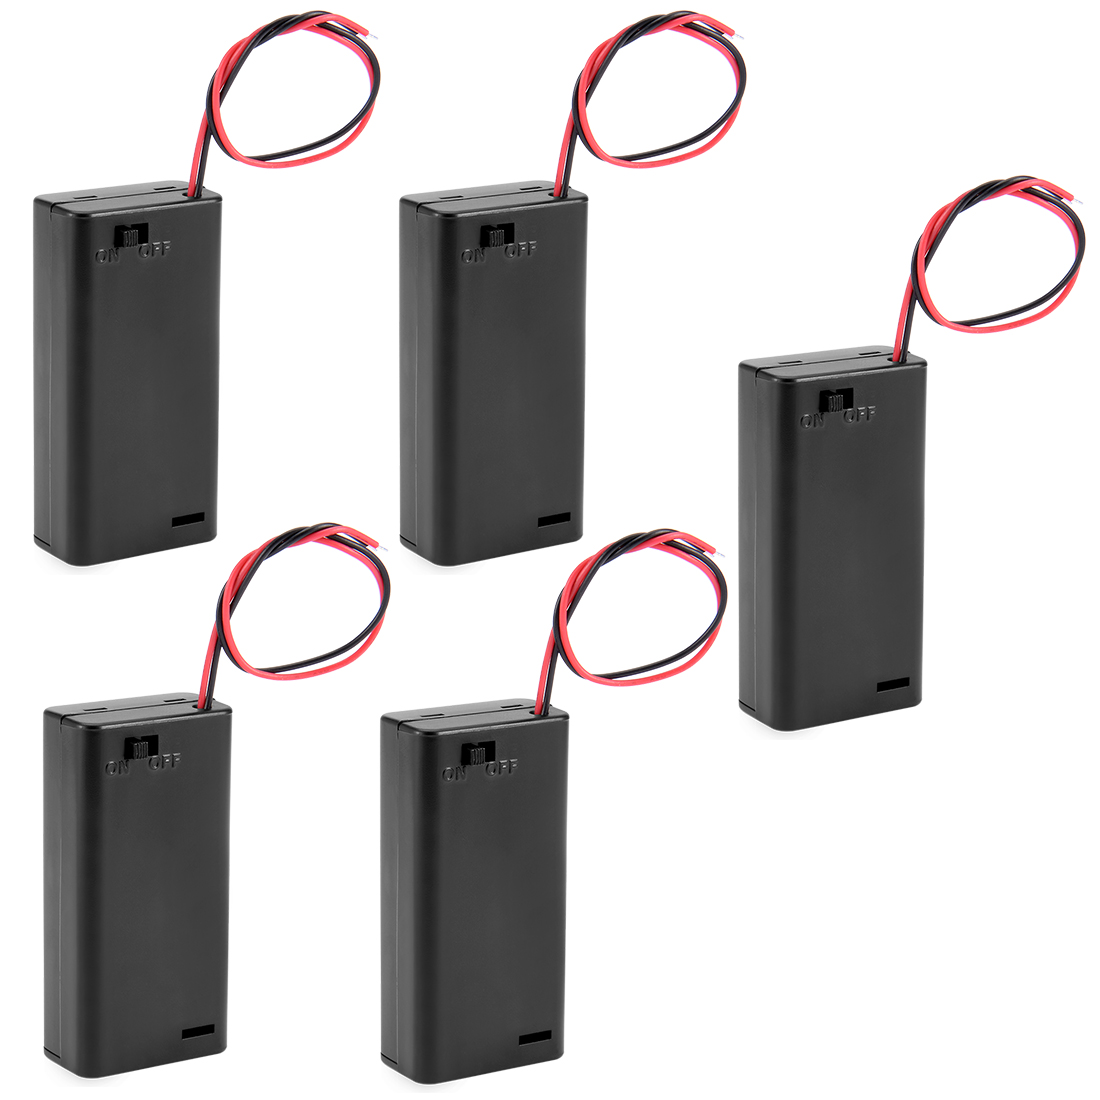 5 Pcs 2 Wire Leads Spring Clip Battery Box Holder w Cap On/Off Switch for 2x1.5V AA Batteries